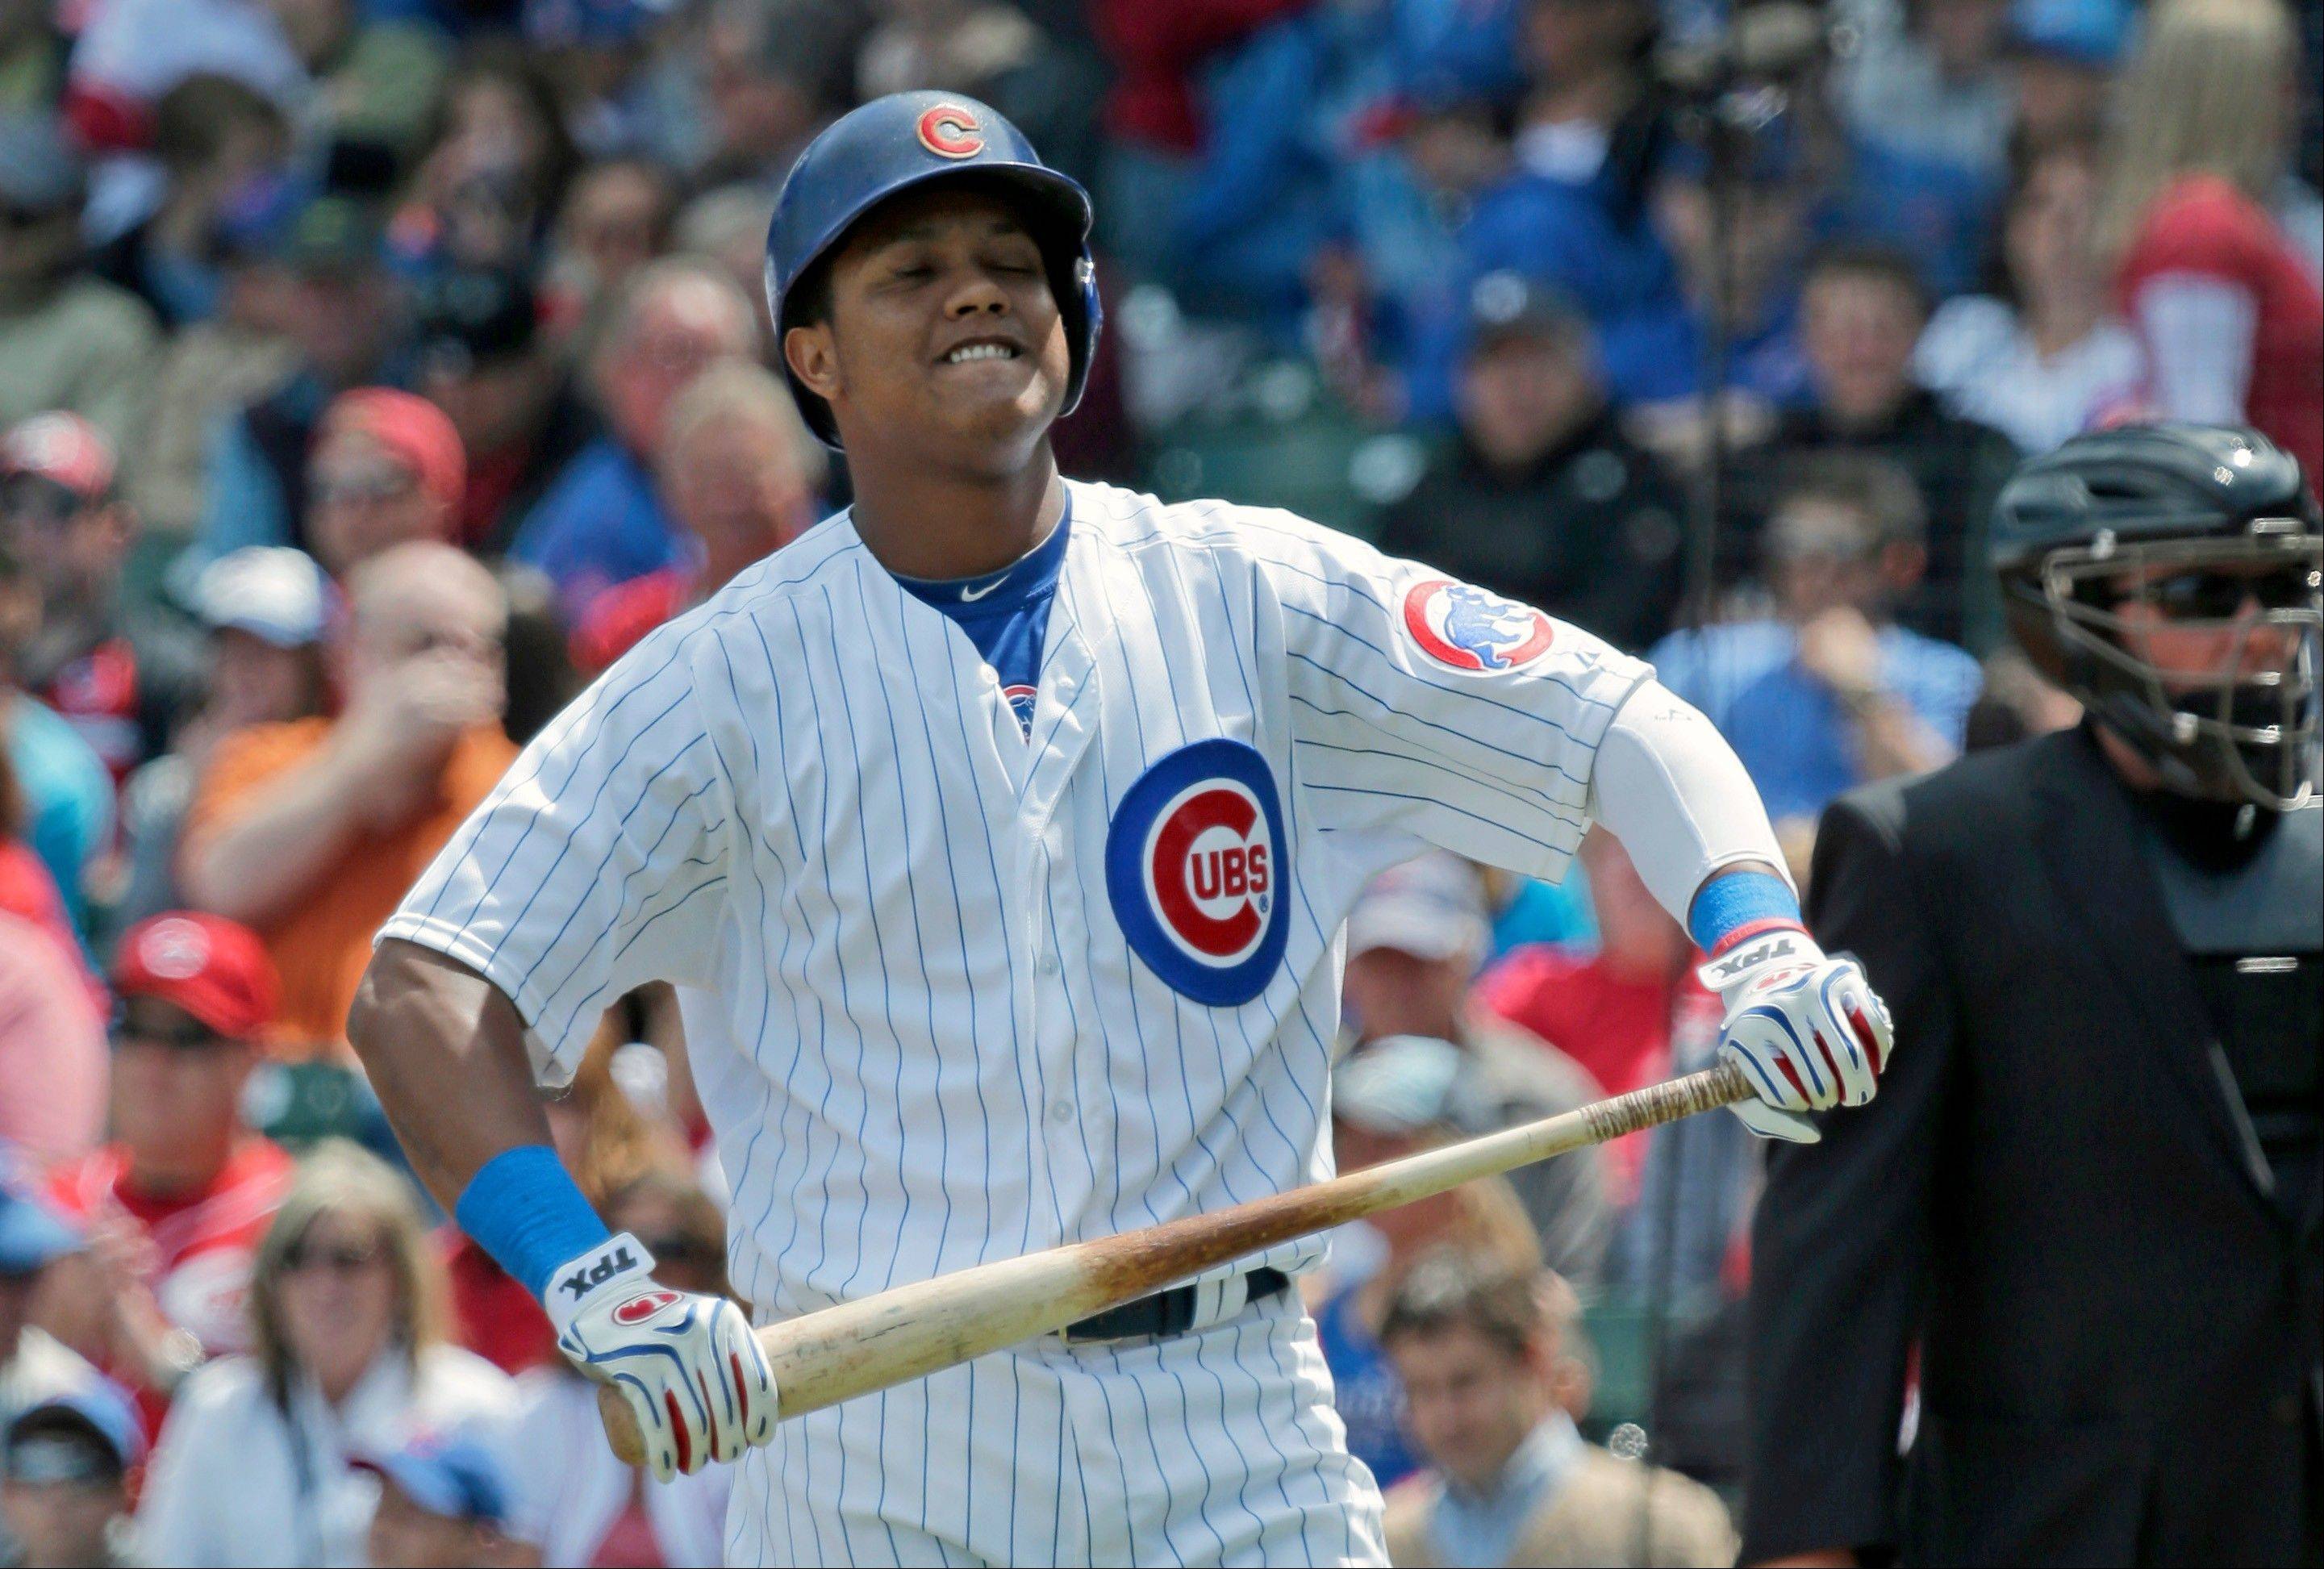 Like most of his teammates, Starlin Castro has struggled at the plate with runners in scoring position, and the are last in the majors in that hitting category.